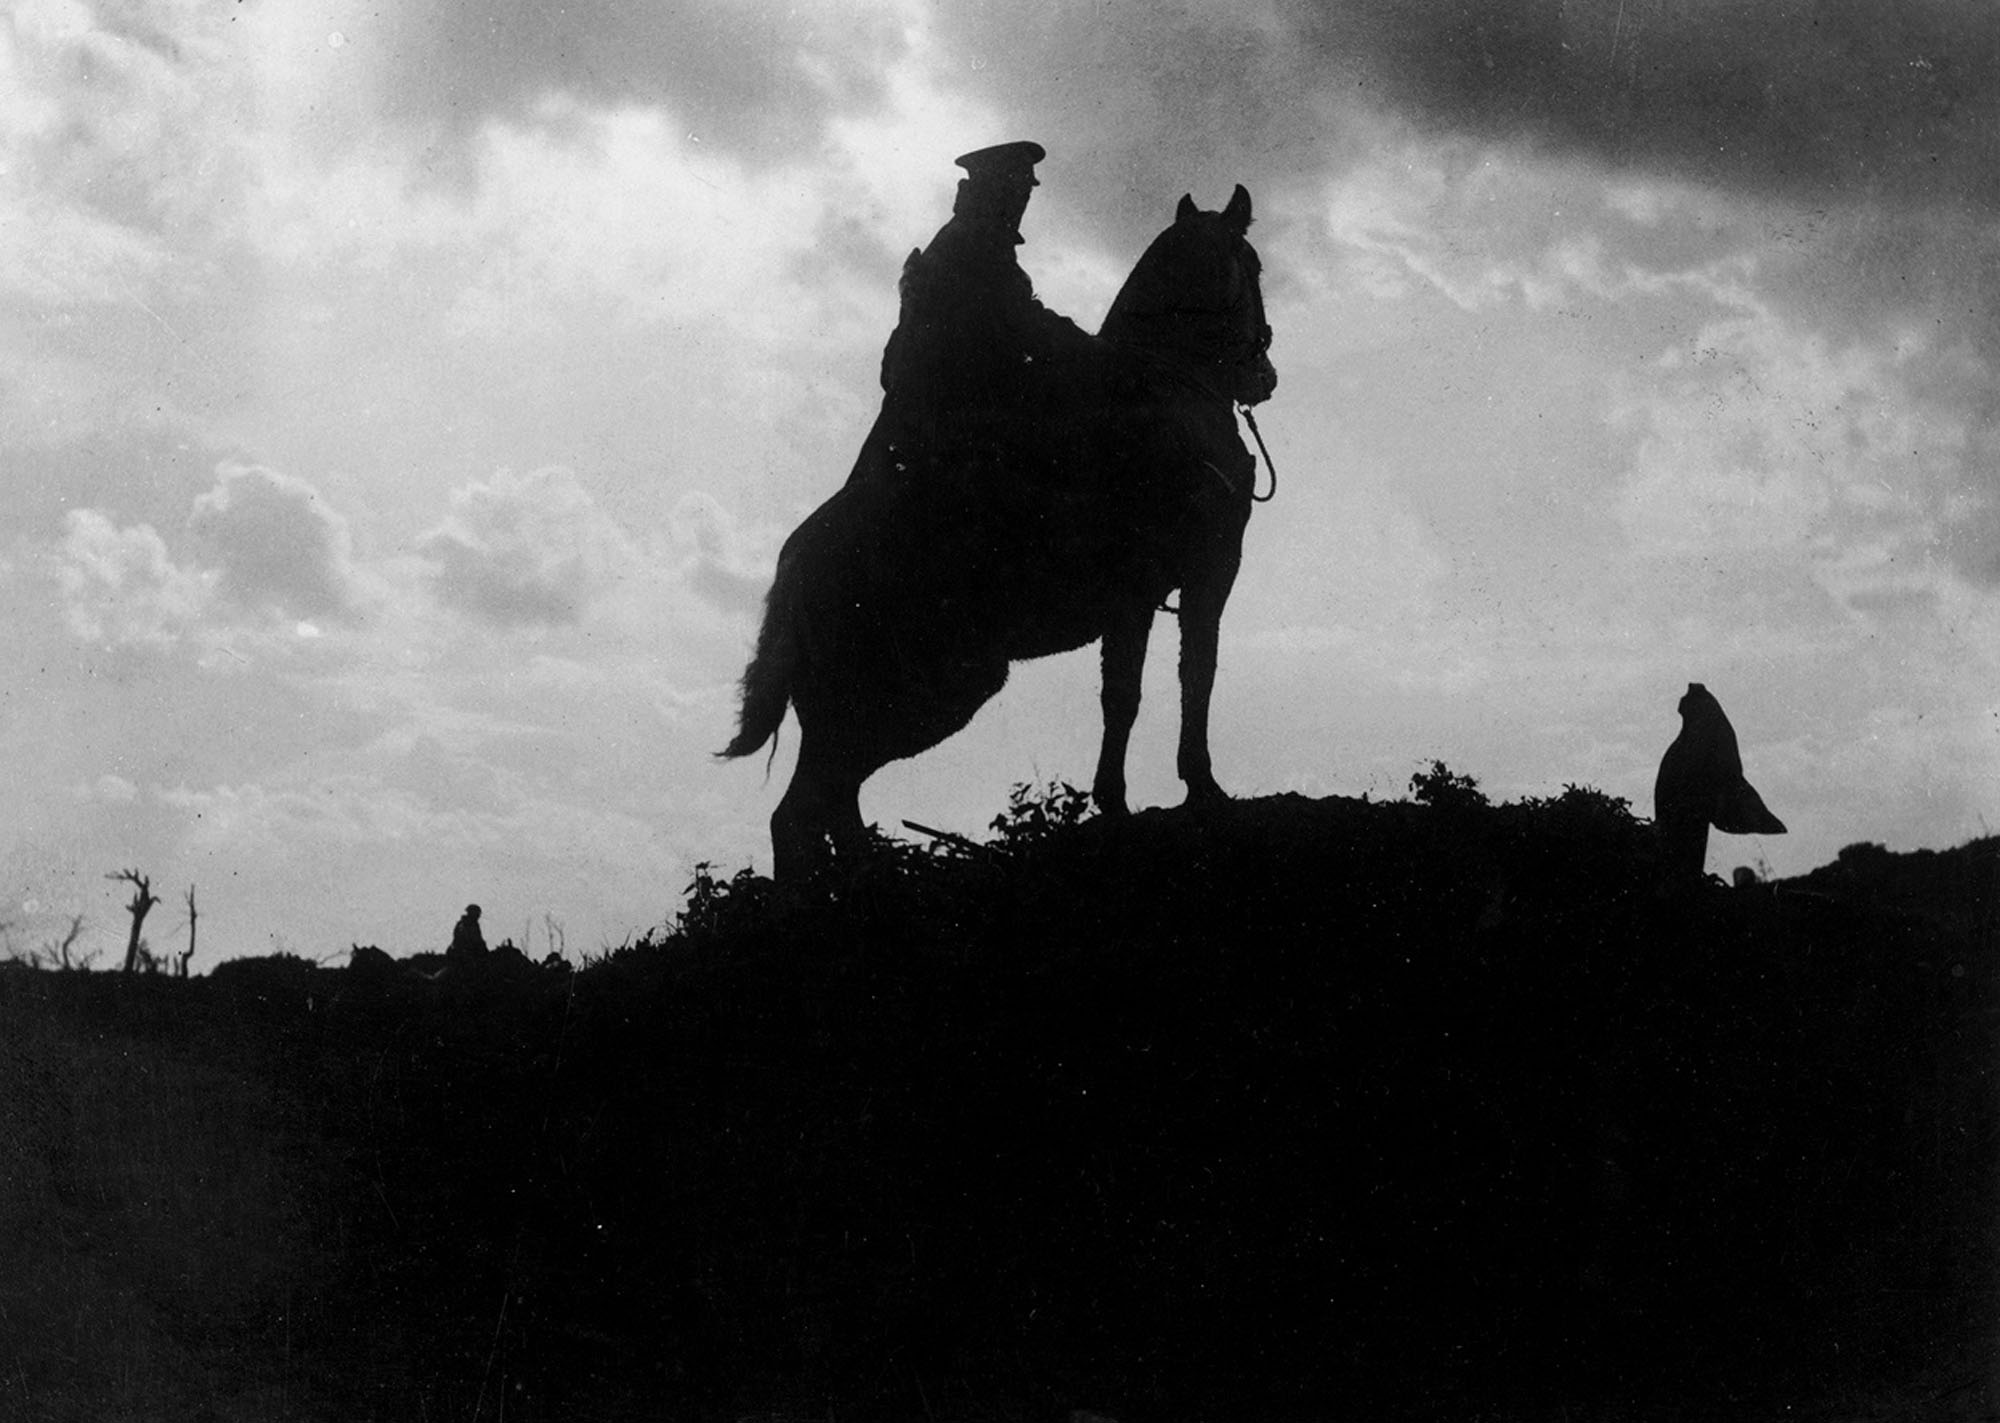 1 Man 1 Horse Video Link world war i in photos: animals at war - the atlantic